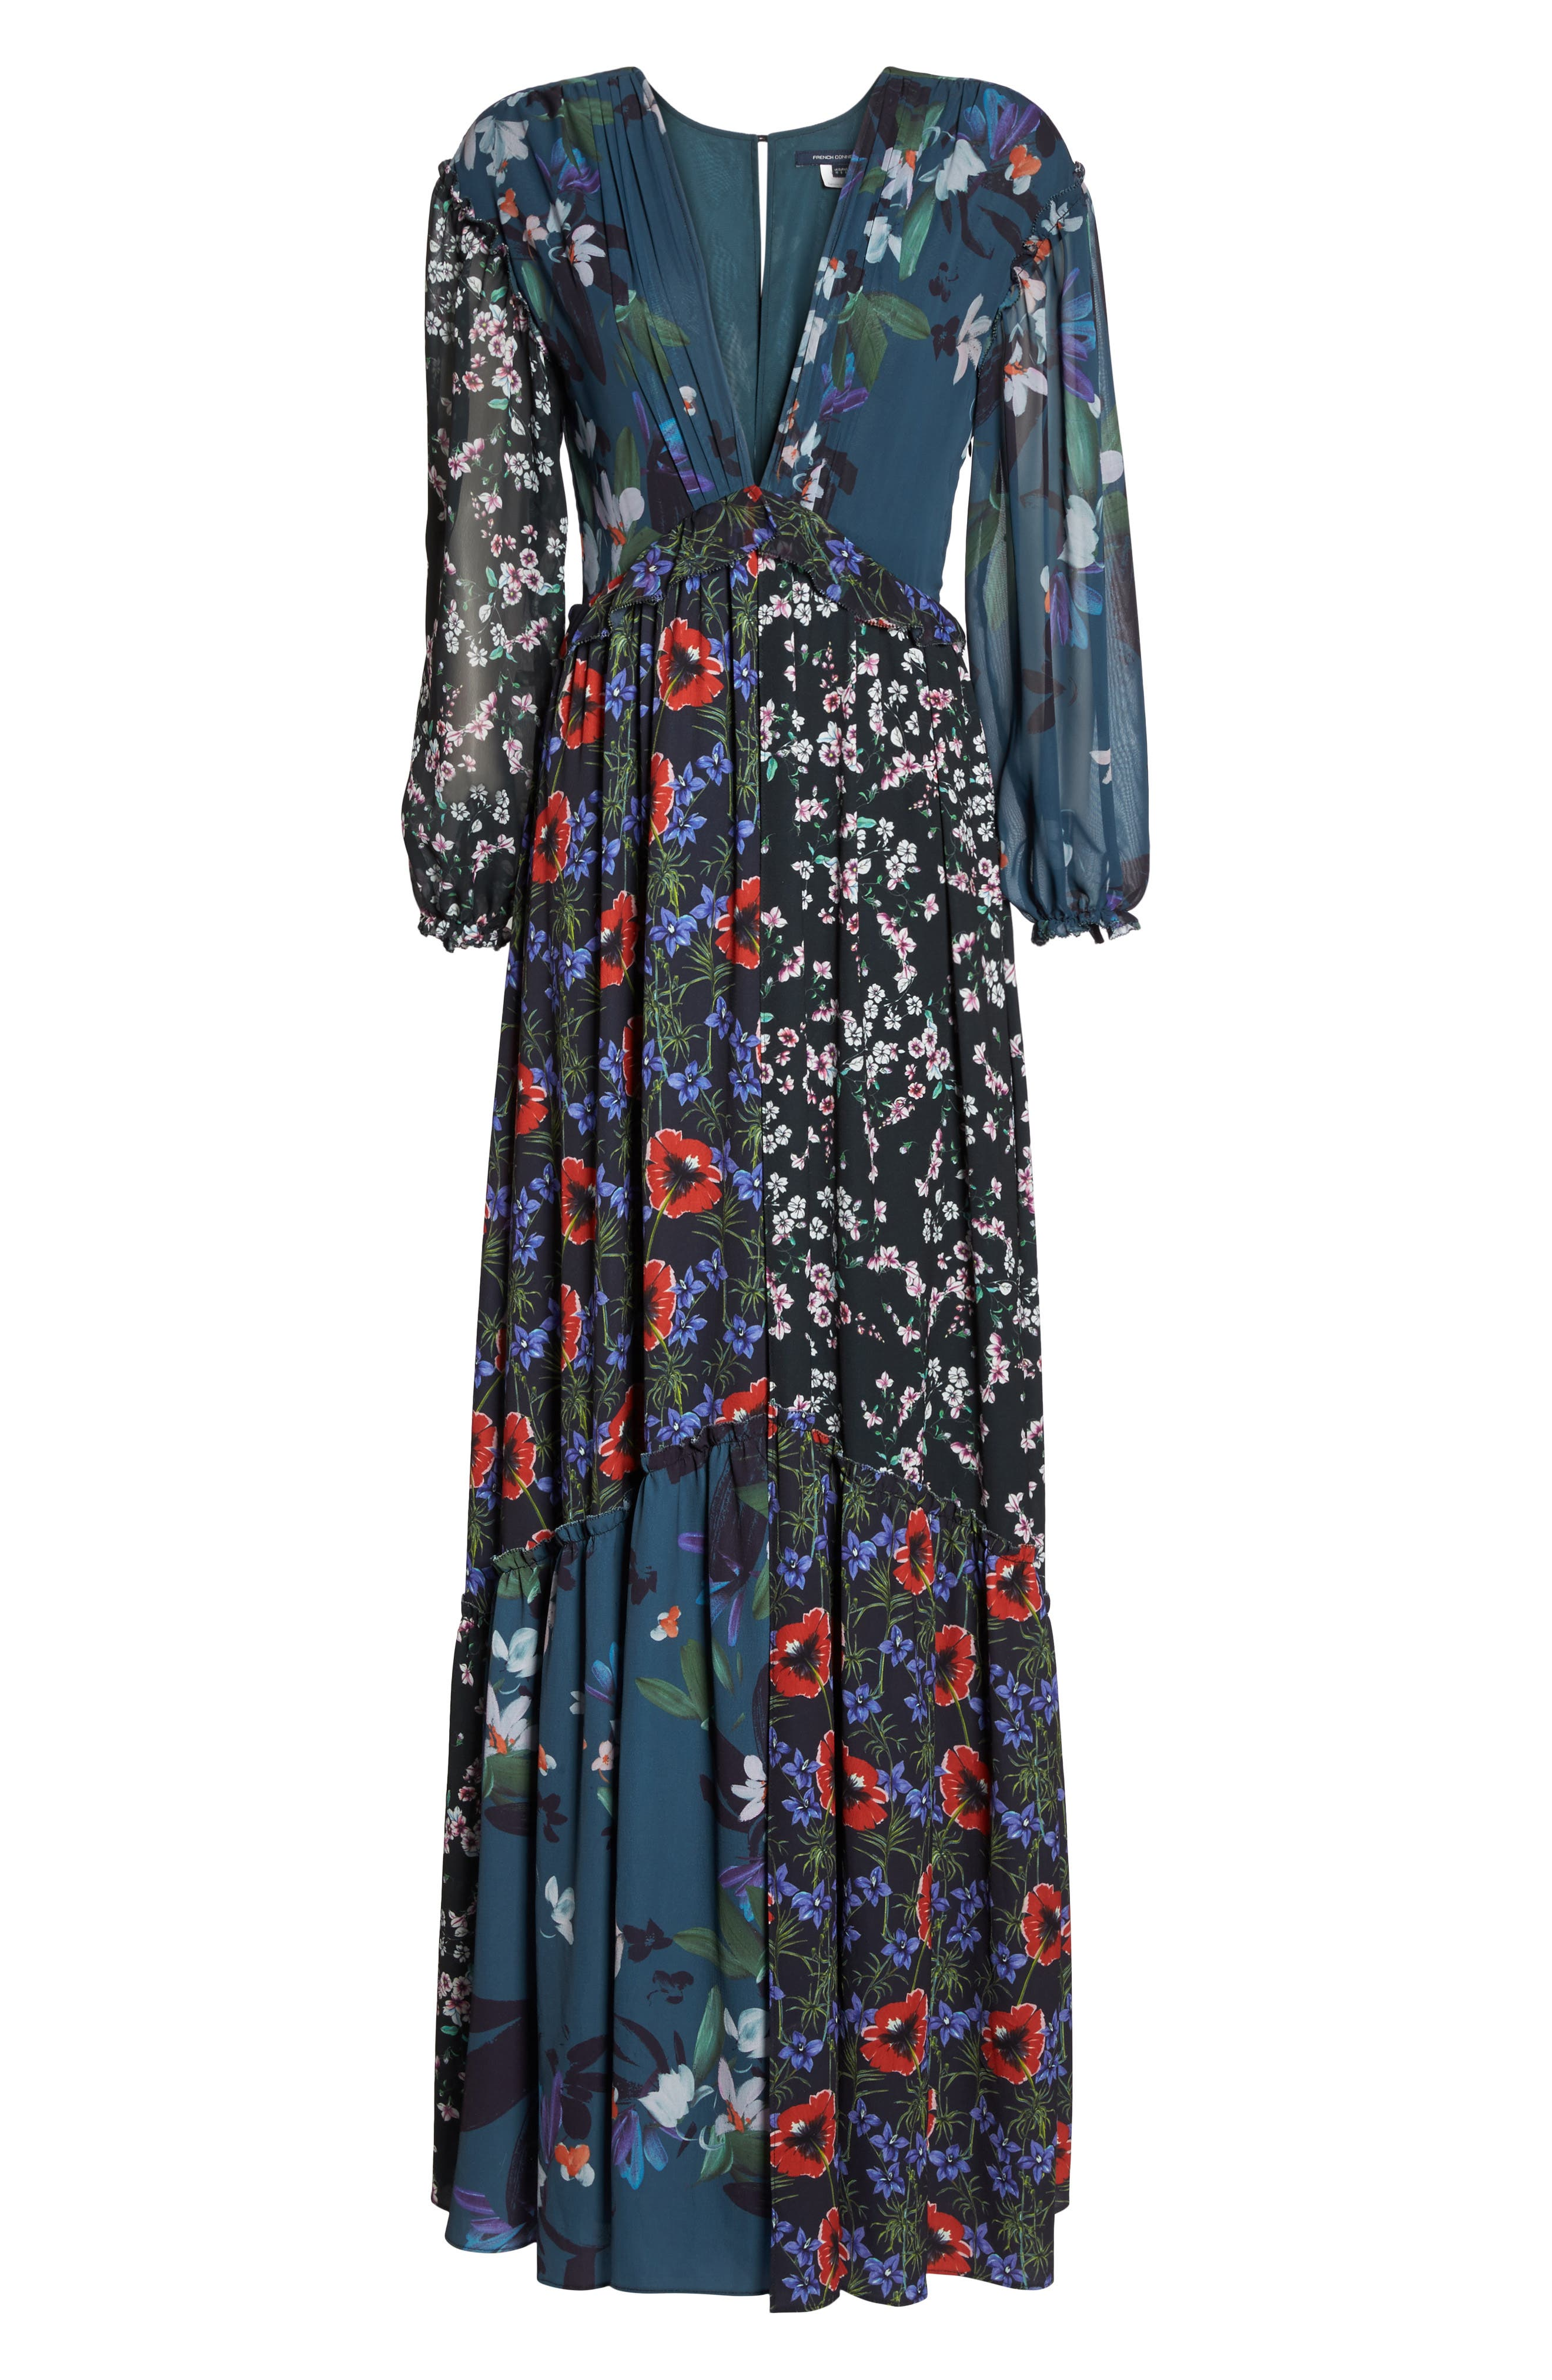 Celia Mix Floral Maxi Dress,                             Alternate thumbnail 6, color,                             Deep Teal Multi